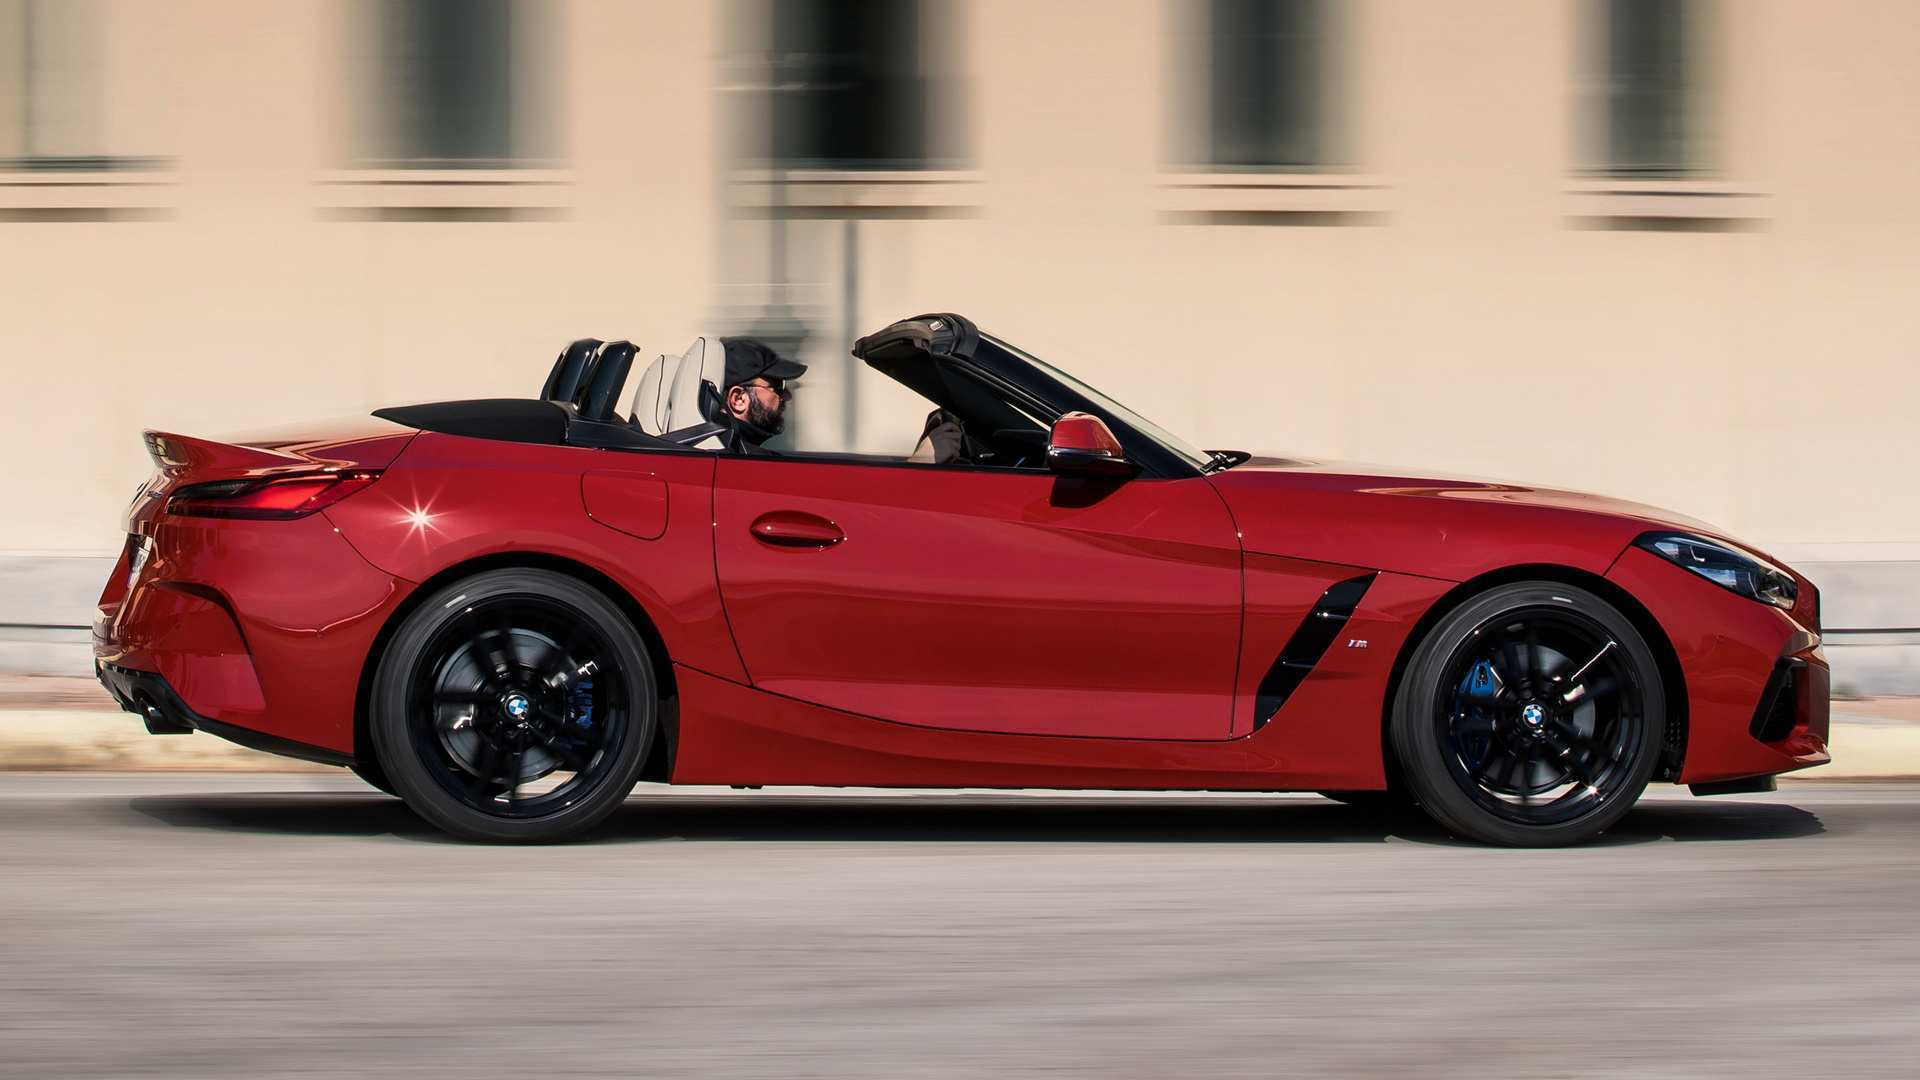 69 All New 2019 BMW Z4 M Roadster Pricing